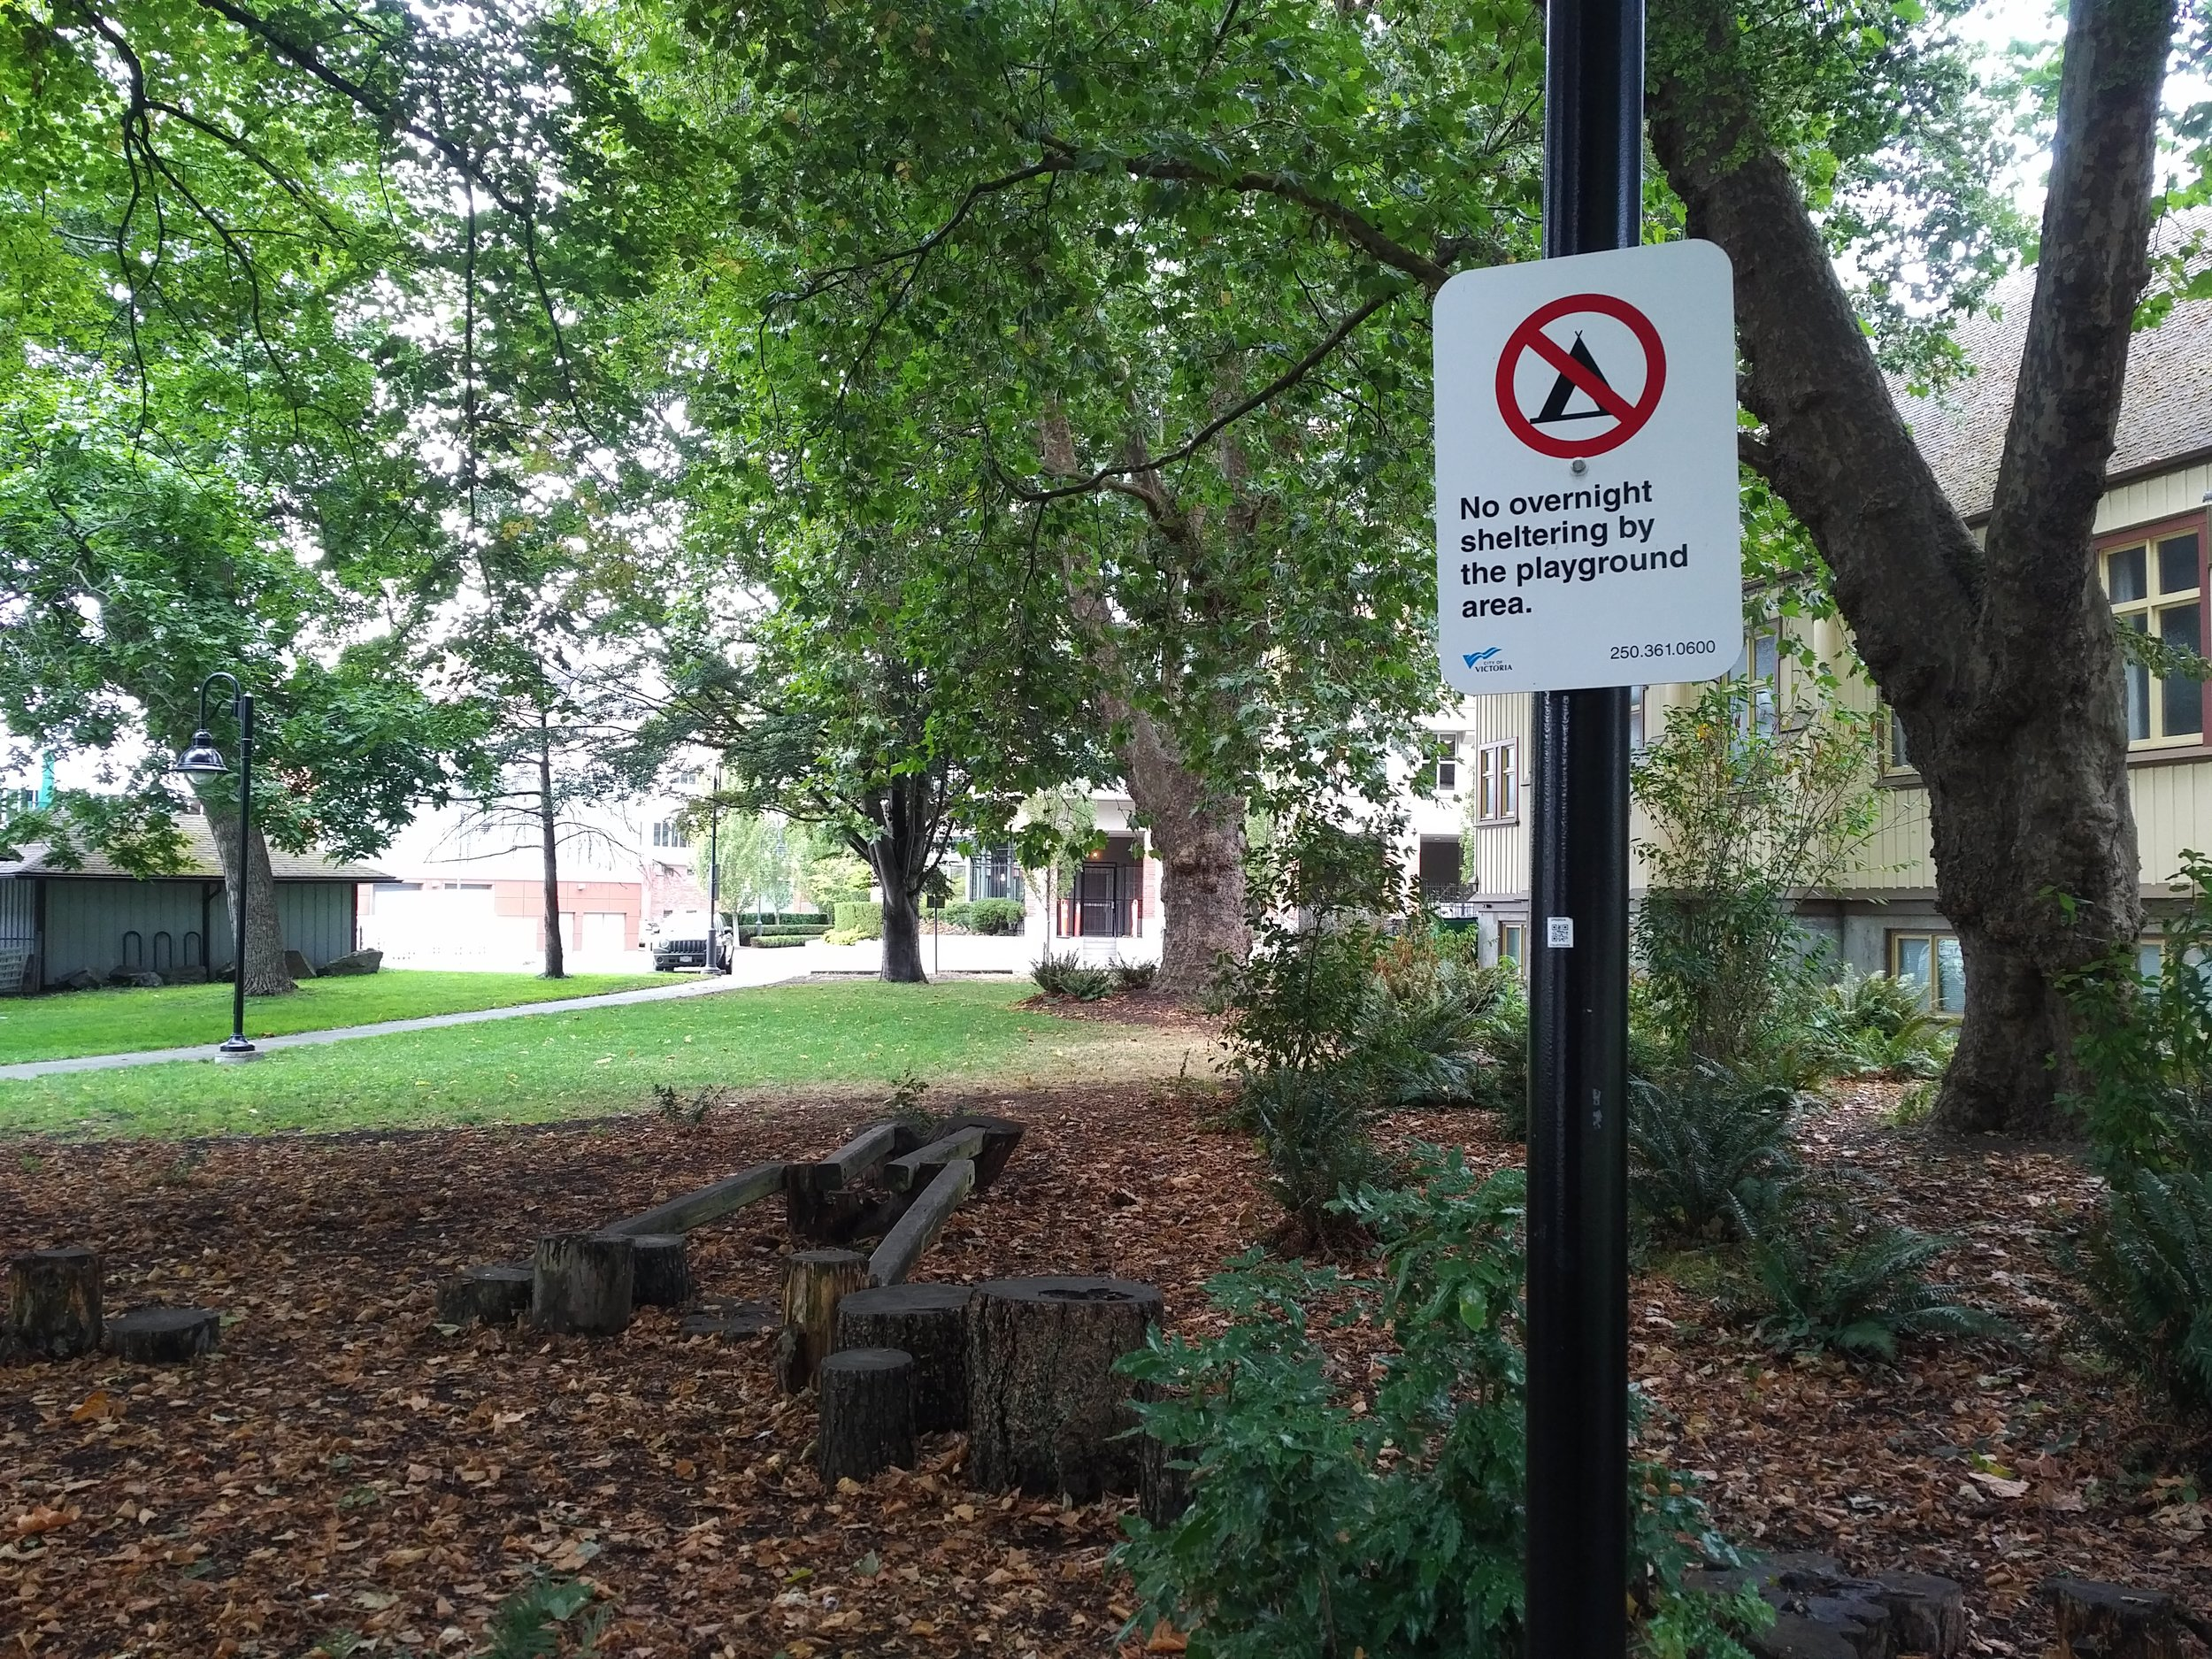 Rules upon rules. Camping is already banned in Cridge Park due to its size, but signs are up to tell people A) Not to camp; and B) Not to camp next to this stump-based playground. The City's website says Cridge Park  does not have a playground .